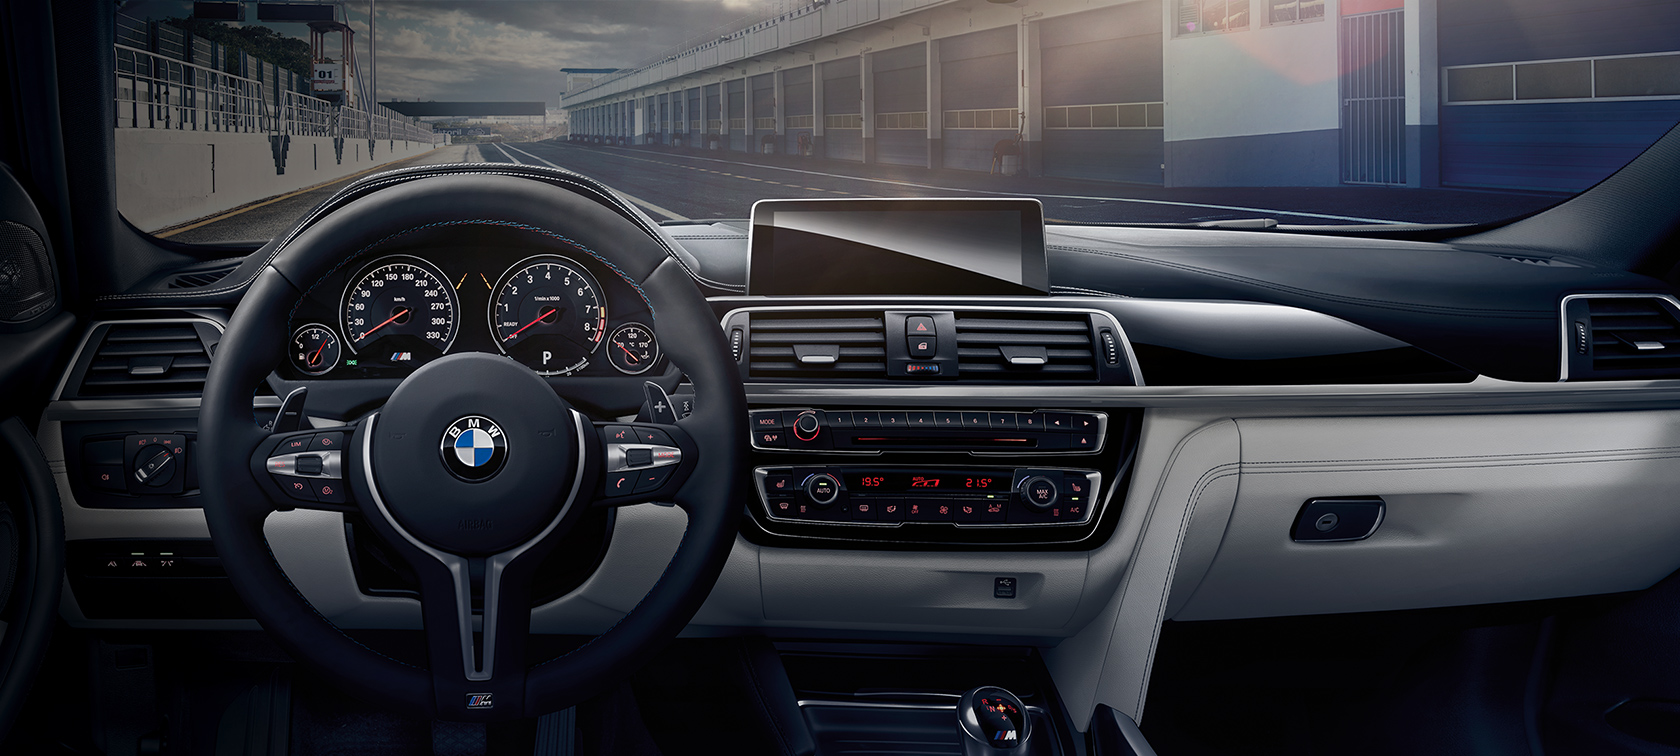 BMW M3 Sedán: detalle de interiores, volante y BMW Connecteddrive